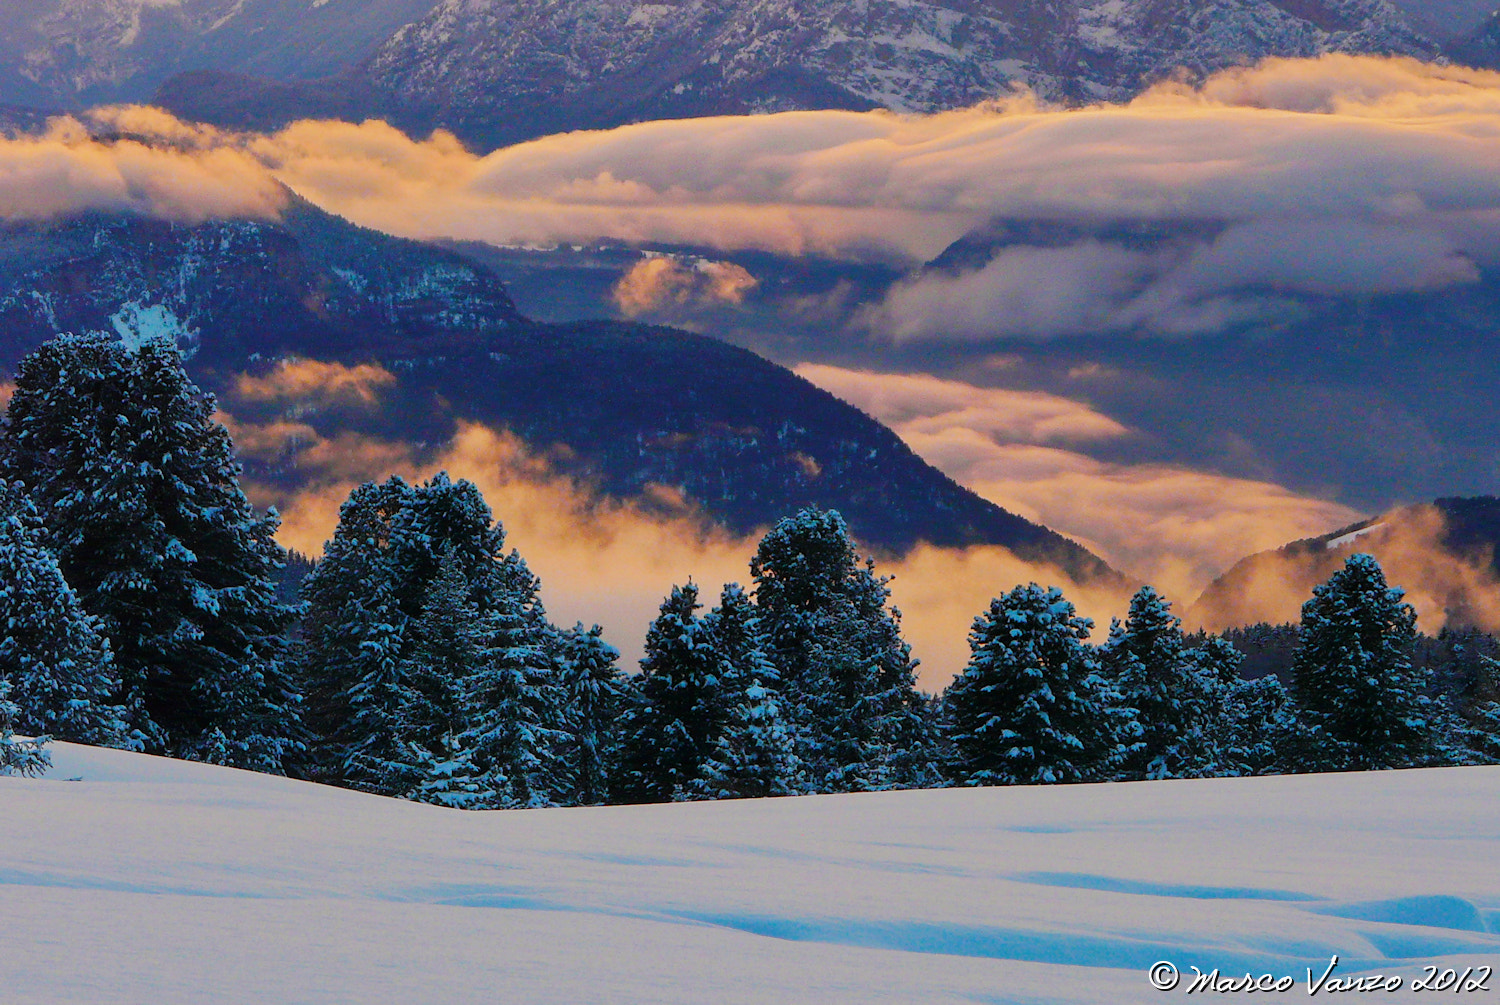 Photograph clouds by Marco Vanzo on 500px